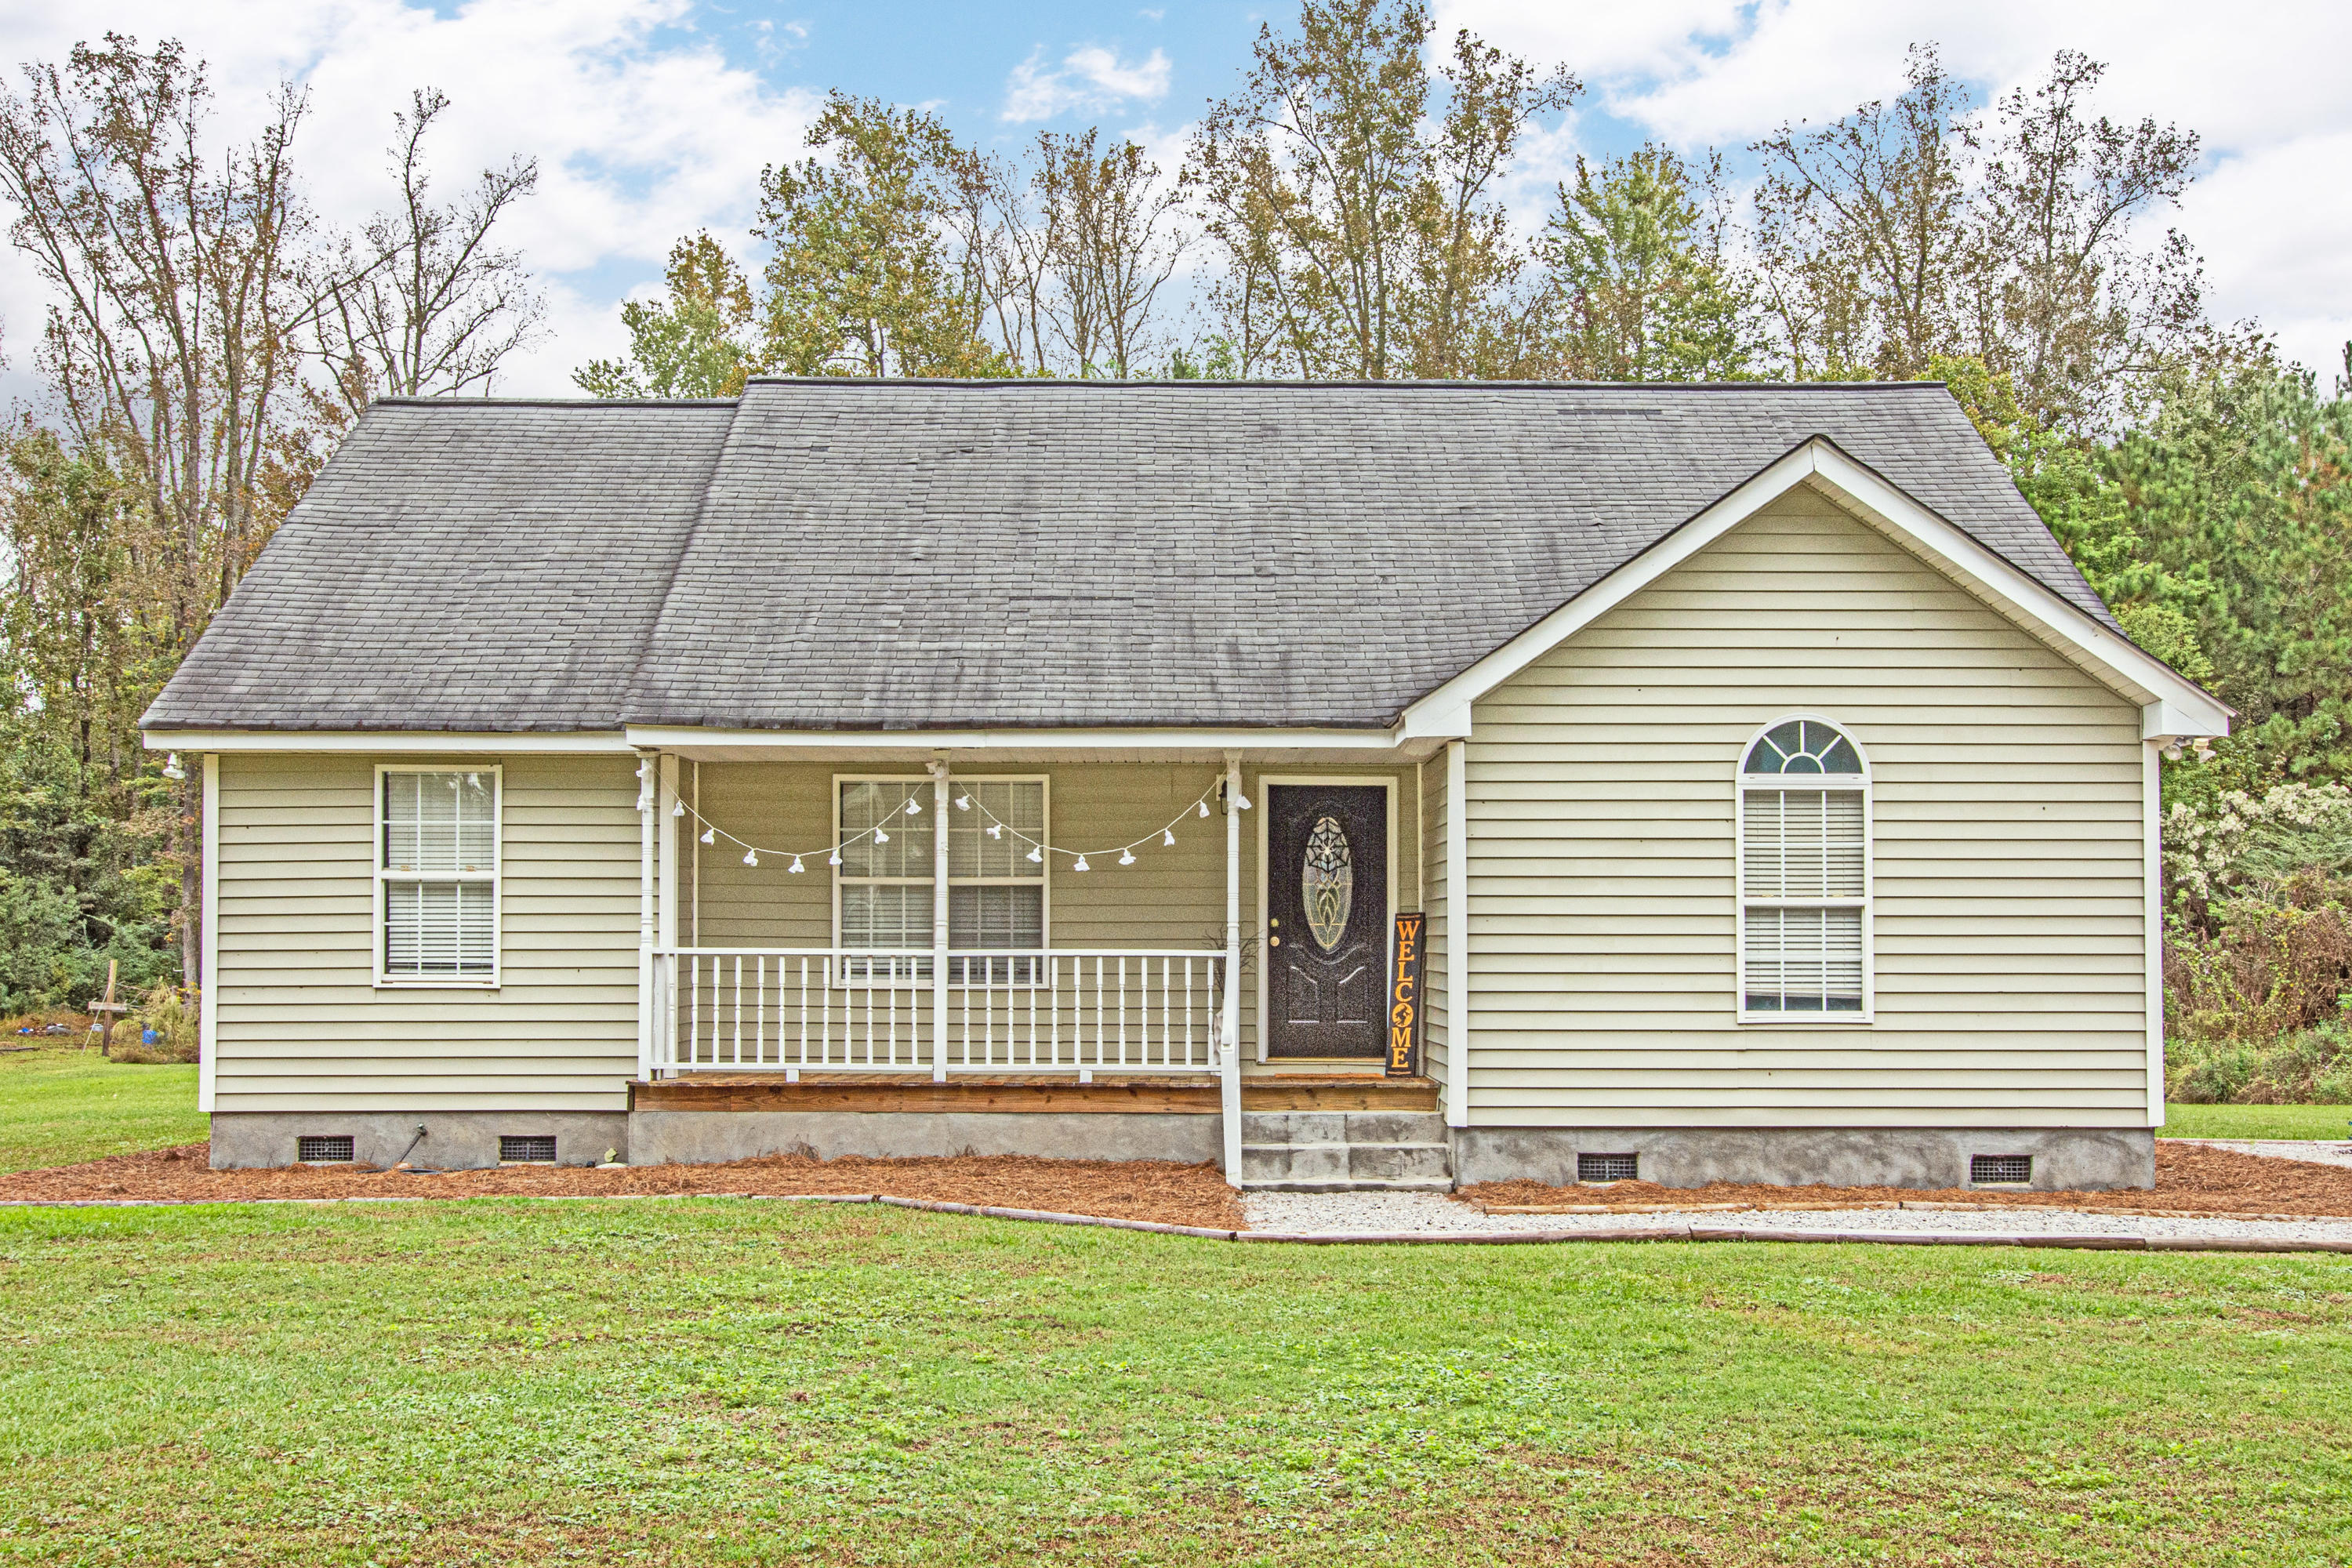 Bayview Acres Homes For Sale - 296 Williams, Saint George, SC - 29